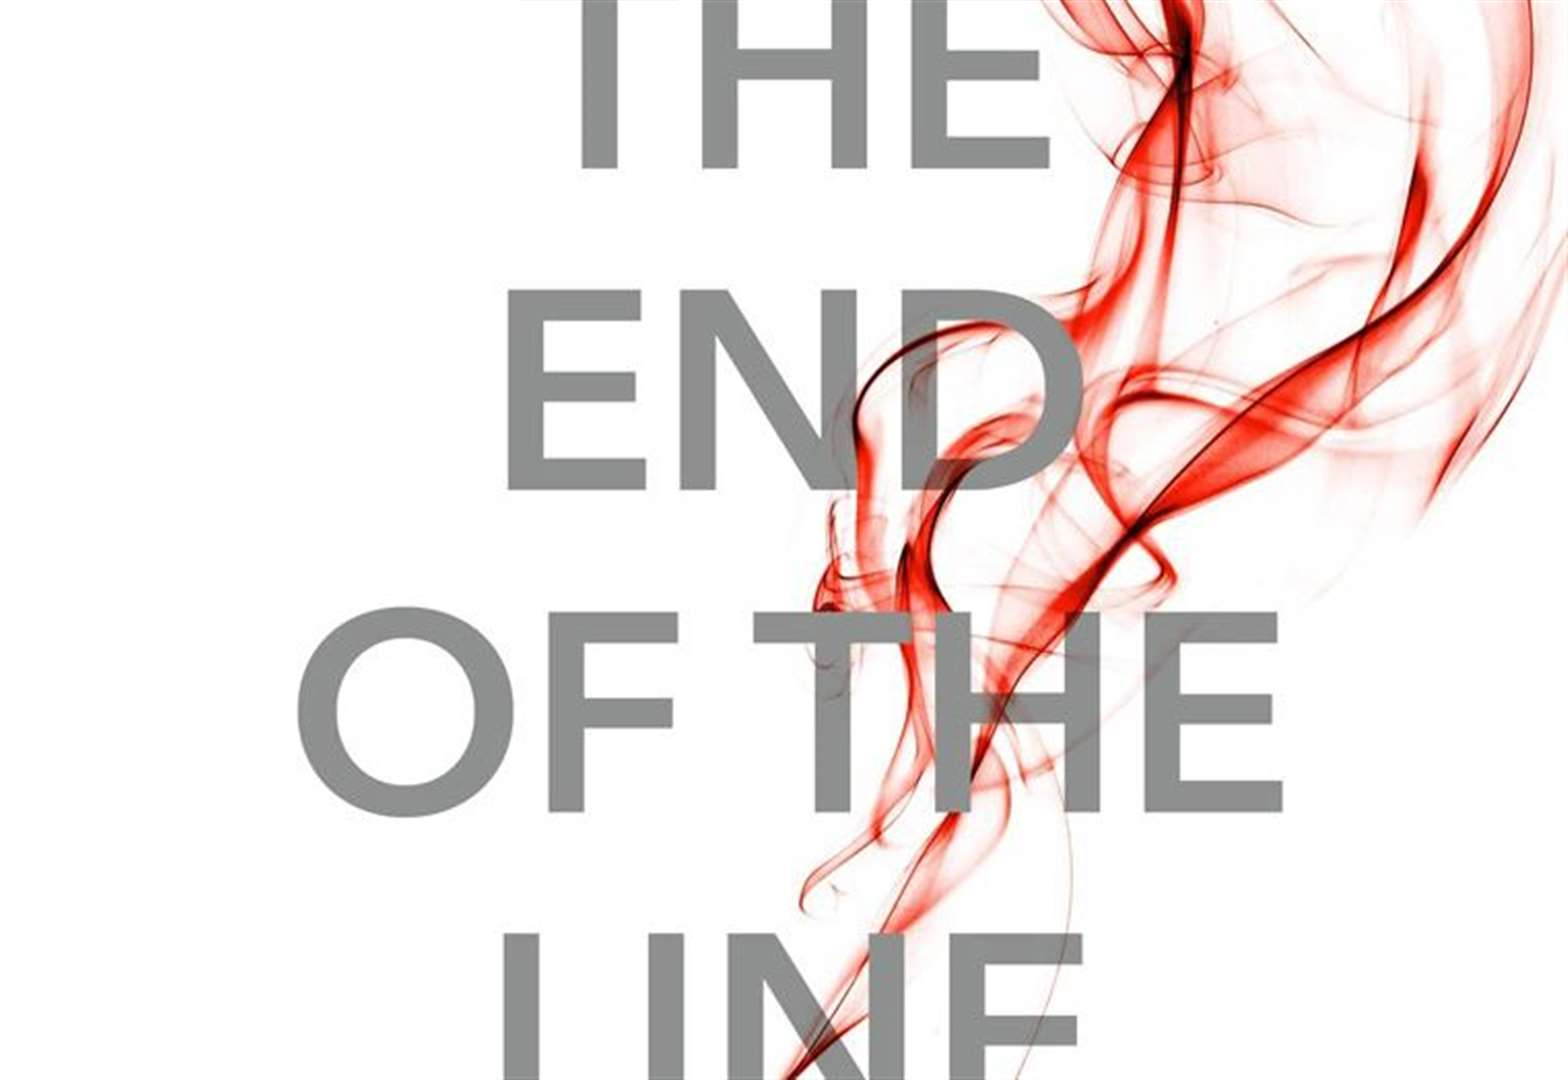 End Of The Line is writer's new start